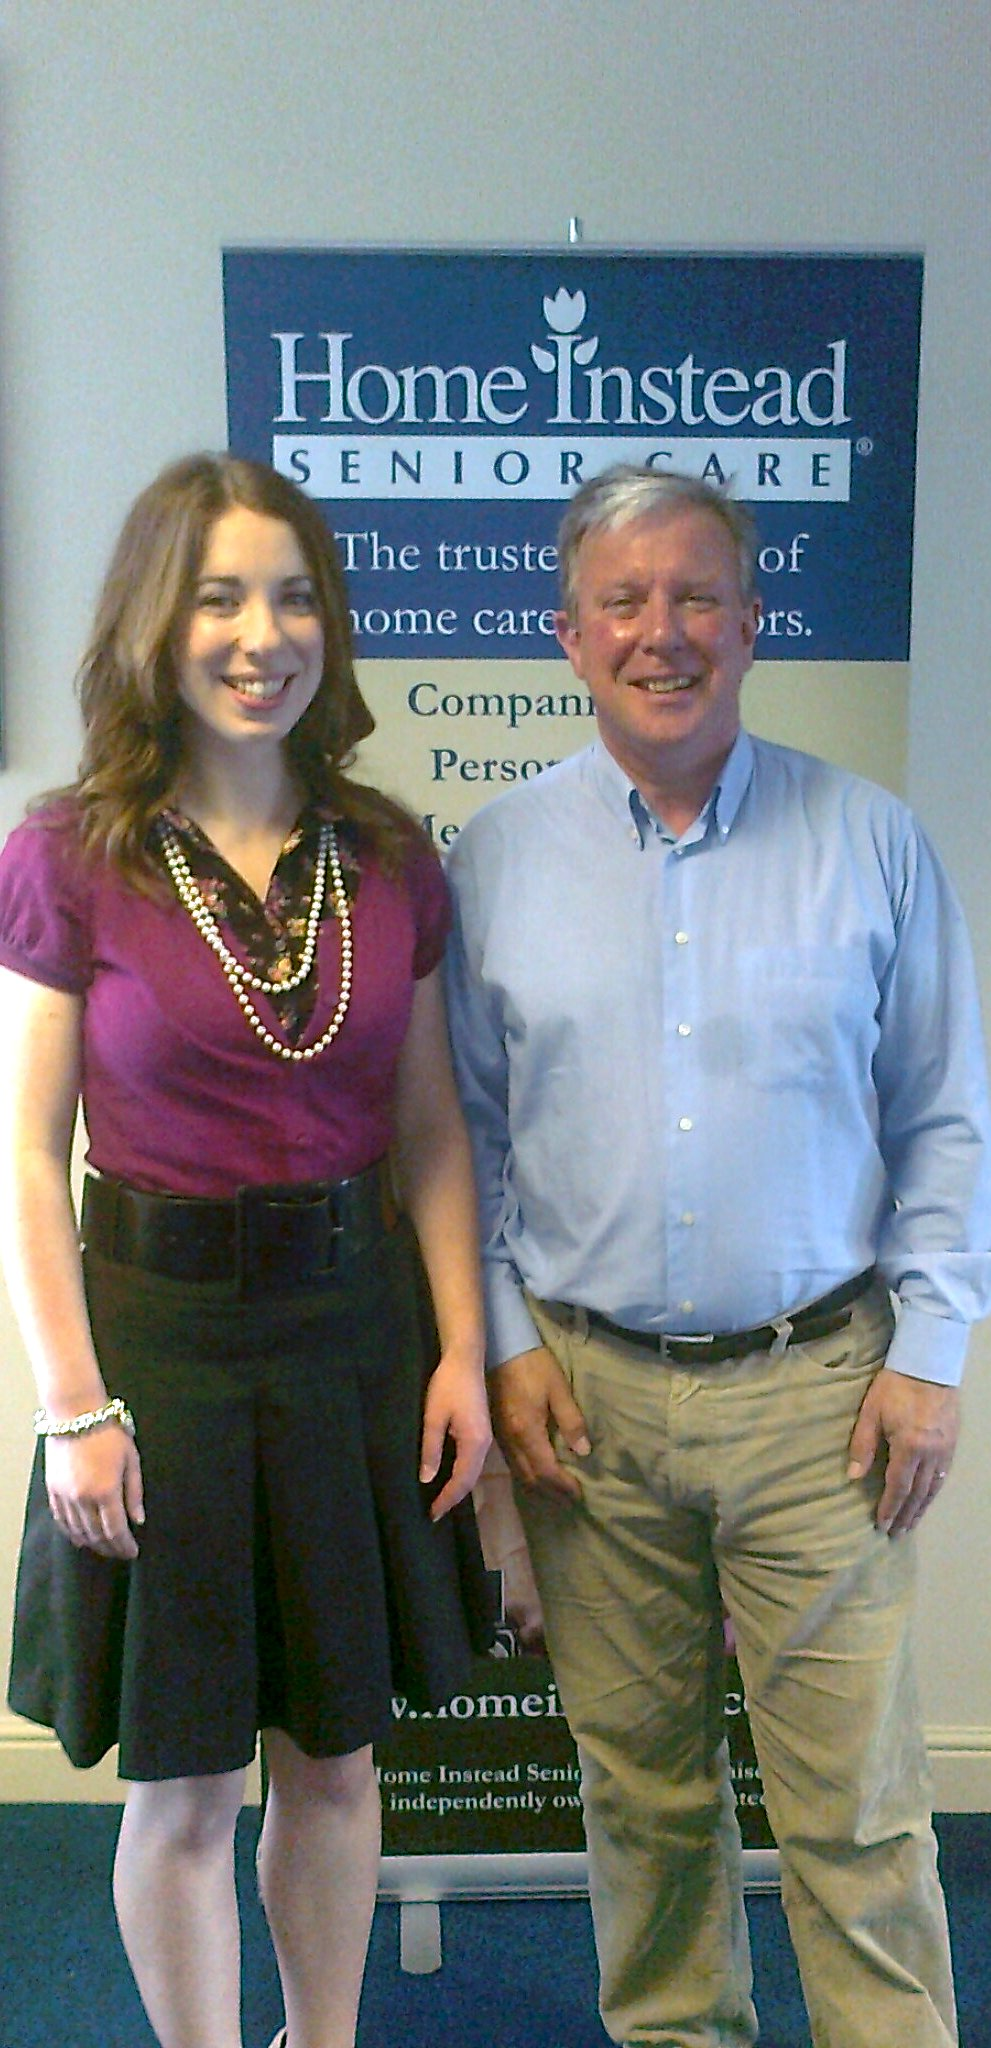 Home Instead Chester young apprentice Heather Camron and her new boss, owner Chris Broadbent